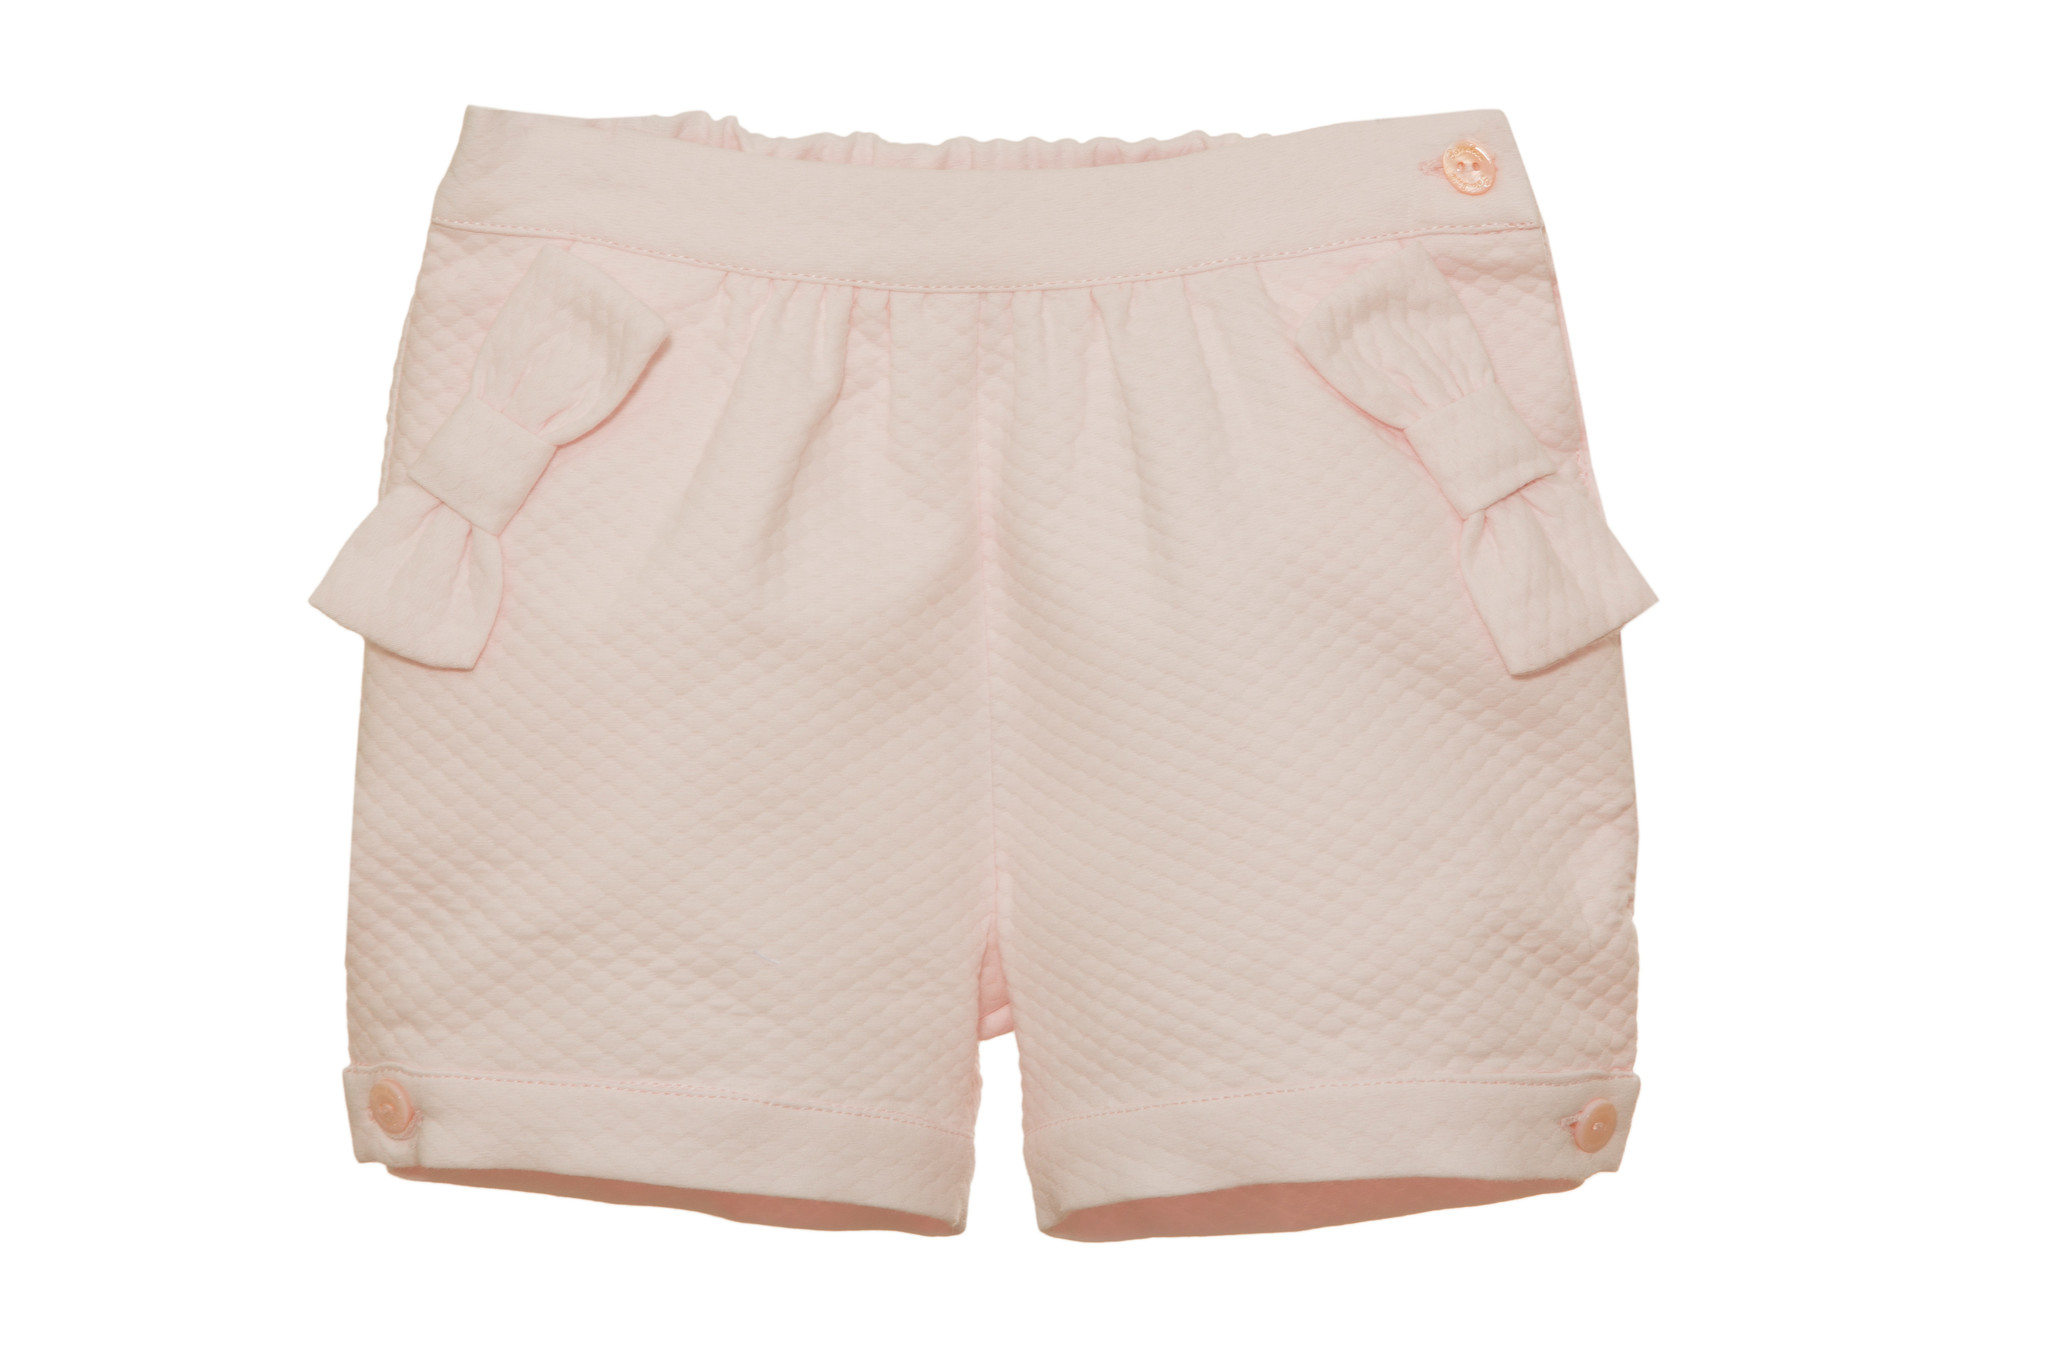 Patachou Patachou Pink Cotton Short Set 3215 S21